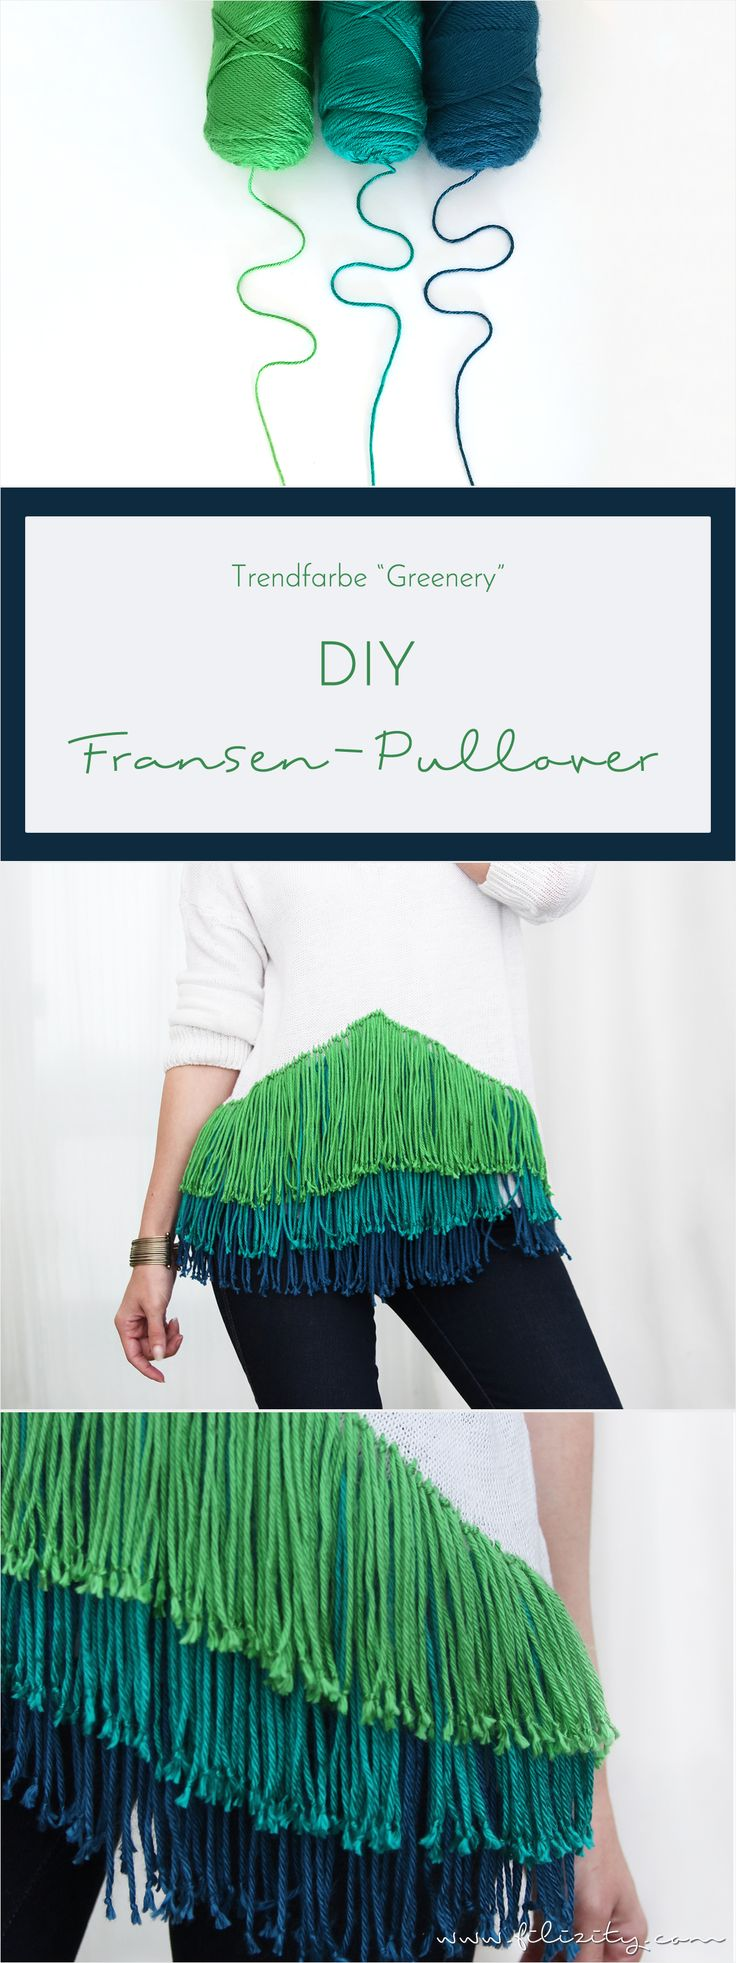 3161 besten diy ideas bilder auf pinterest diy deko diy for Zimmerdekoration diy